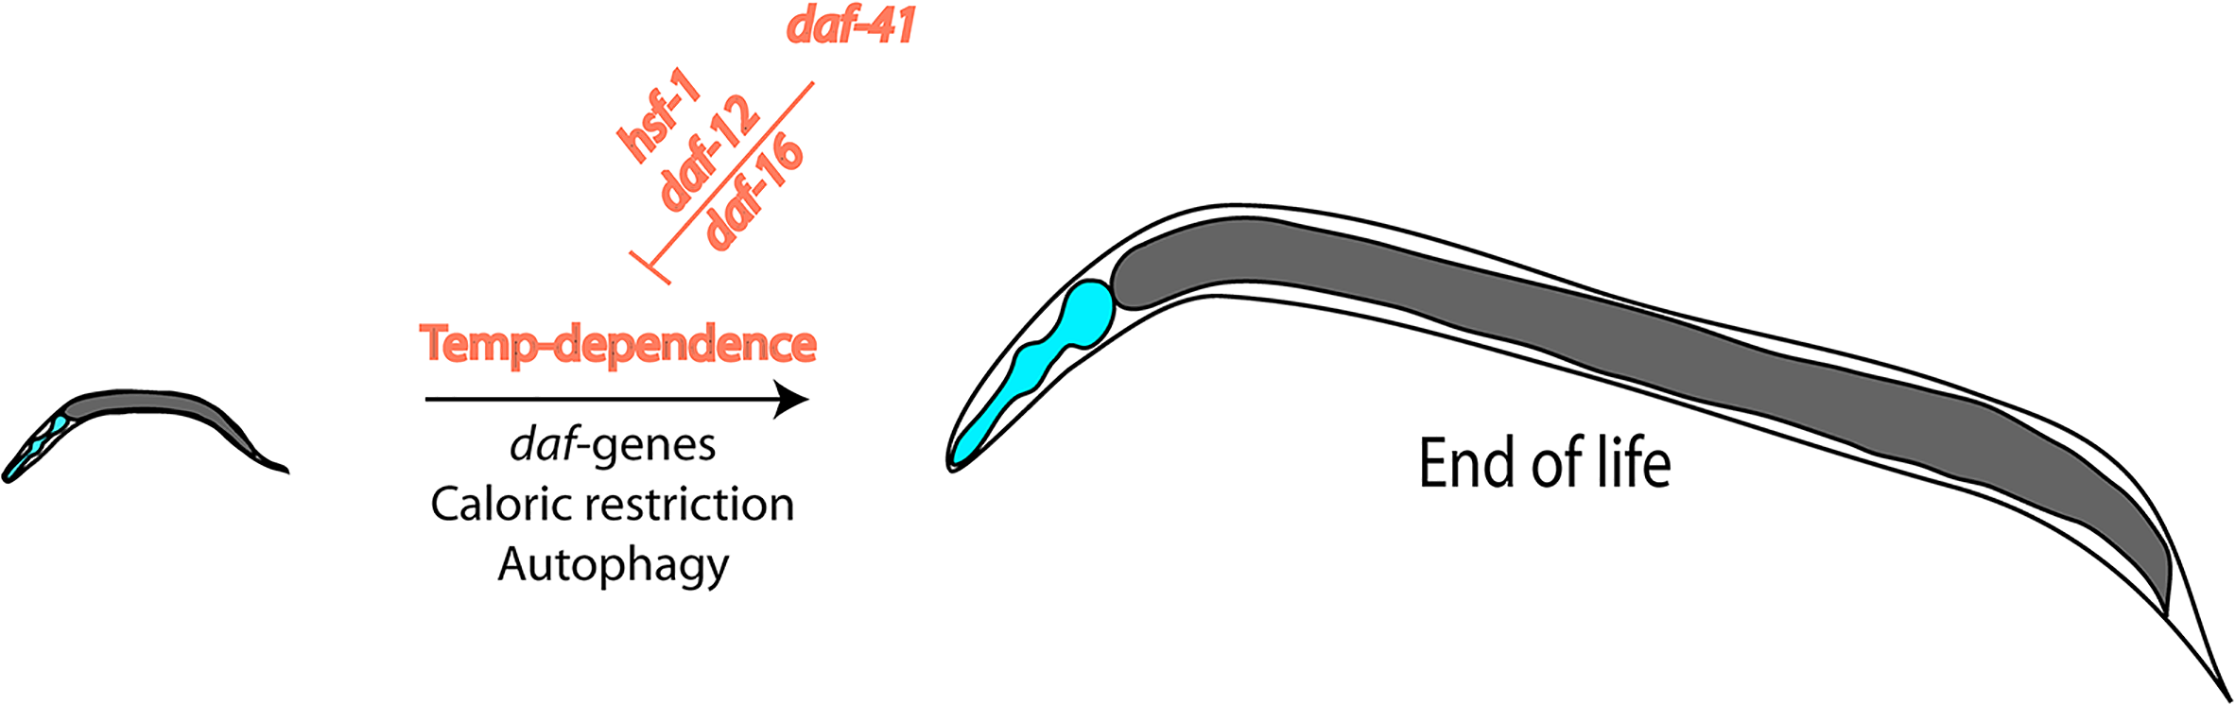 Nematode lifespan is regulated by temperature amongst other influences.